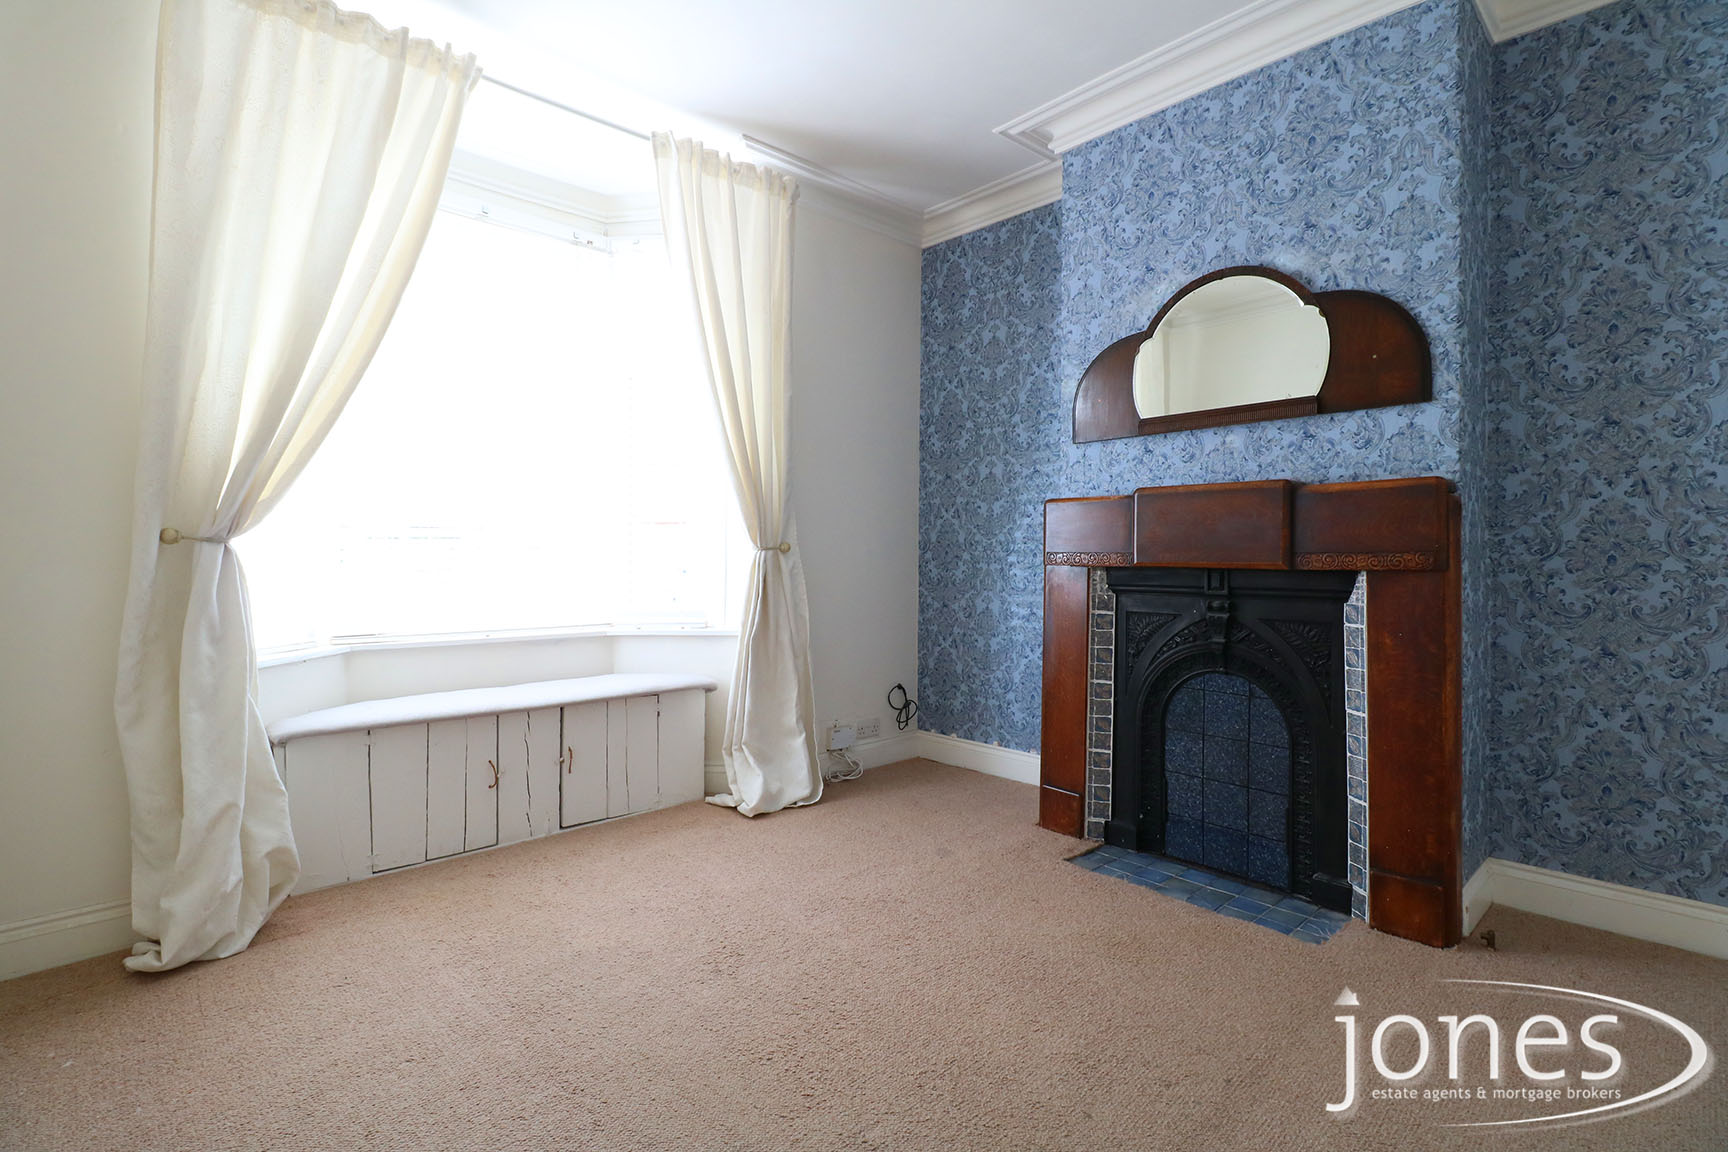 Home for Sale Let - Photo 02 Station Road Norton Stockton on Tees TS20 1PE